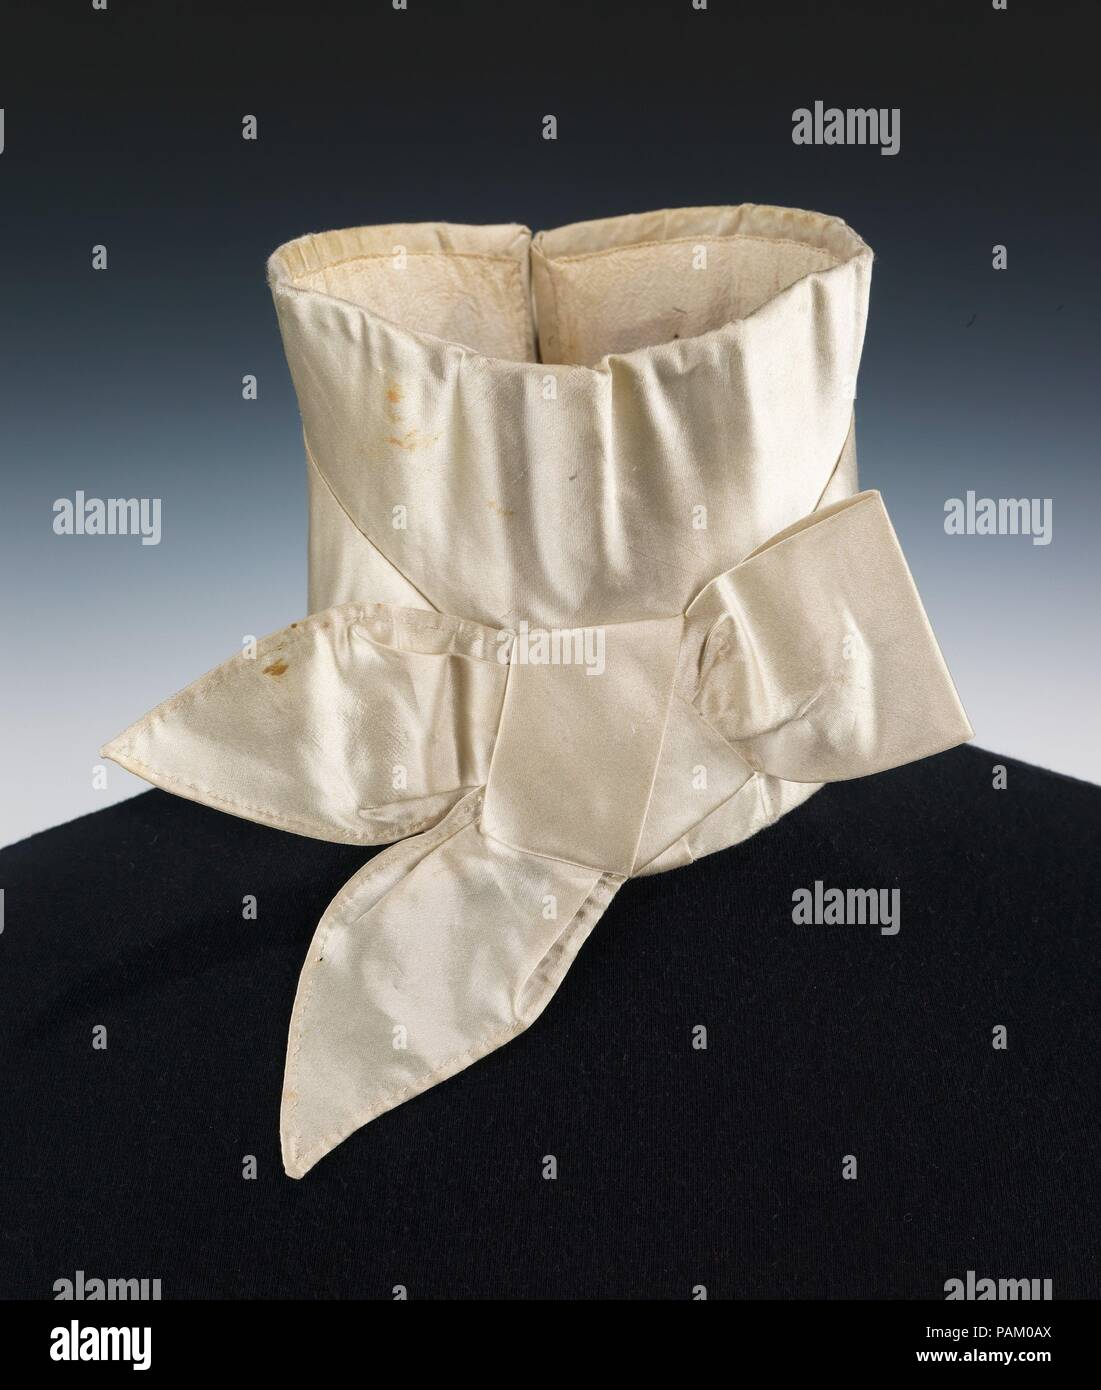 Wedding stock. Culture: American. Date: 1835.  This is an elegant example of a stock, the standard neckwear for men in the early 19th century, to be worn over the high stand collar of the shirt.  The styles of the 1830s were prescribed by fashionable dandies, such as Alfred Guillaume Gabriel, Count D'Orsay (1801-1852), a French emigrant who had relocated to England in 1829, and influenced artists and writers in wit and dress.  The crisp and complete stock with a tailored bow was essential in fashionable formal dress. Museum: Metropolitan Museum of Art, New York, USA. - Stock Image